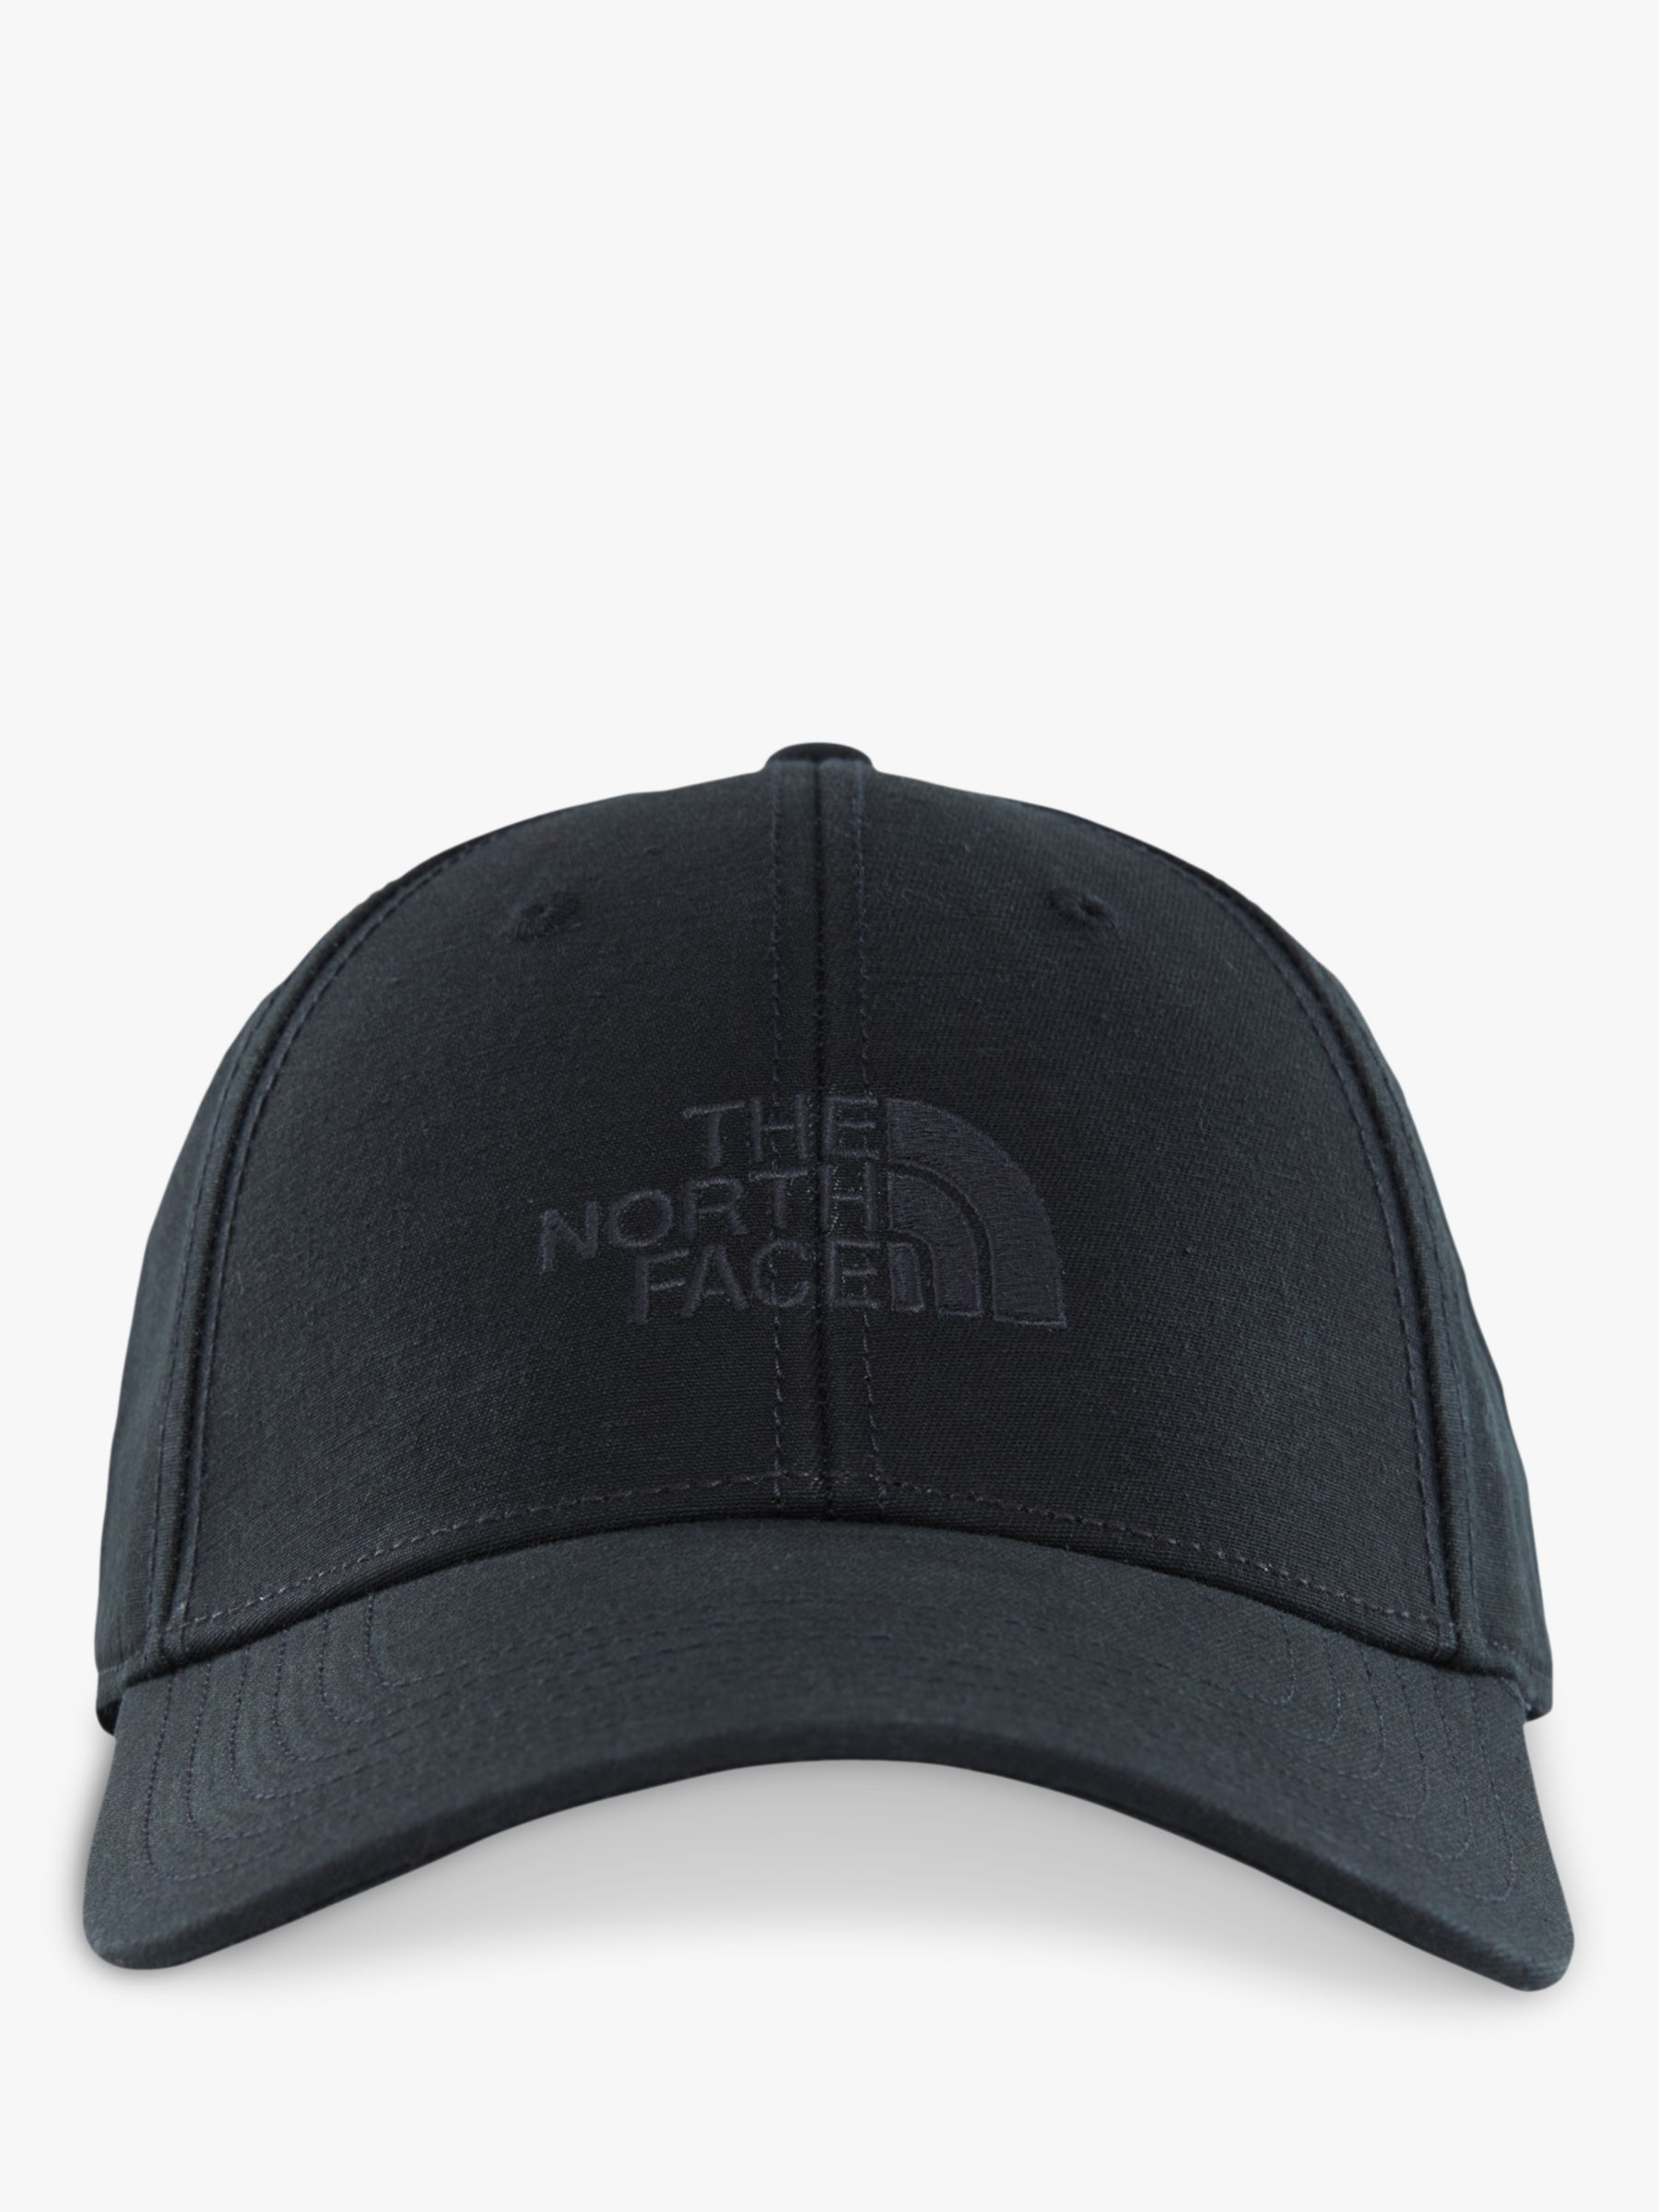 The North Face The North Face 66 Classic Cap, One Size, Black